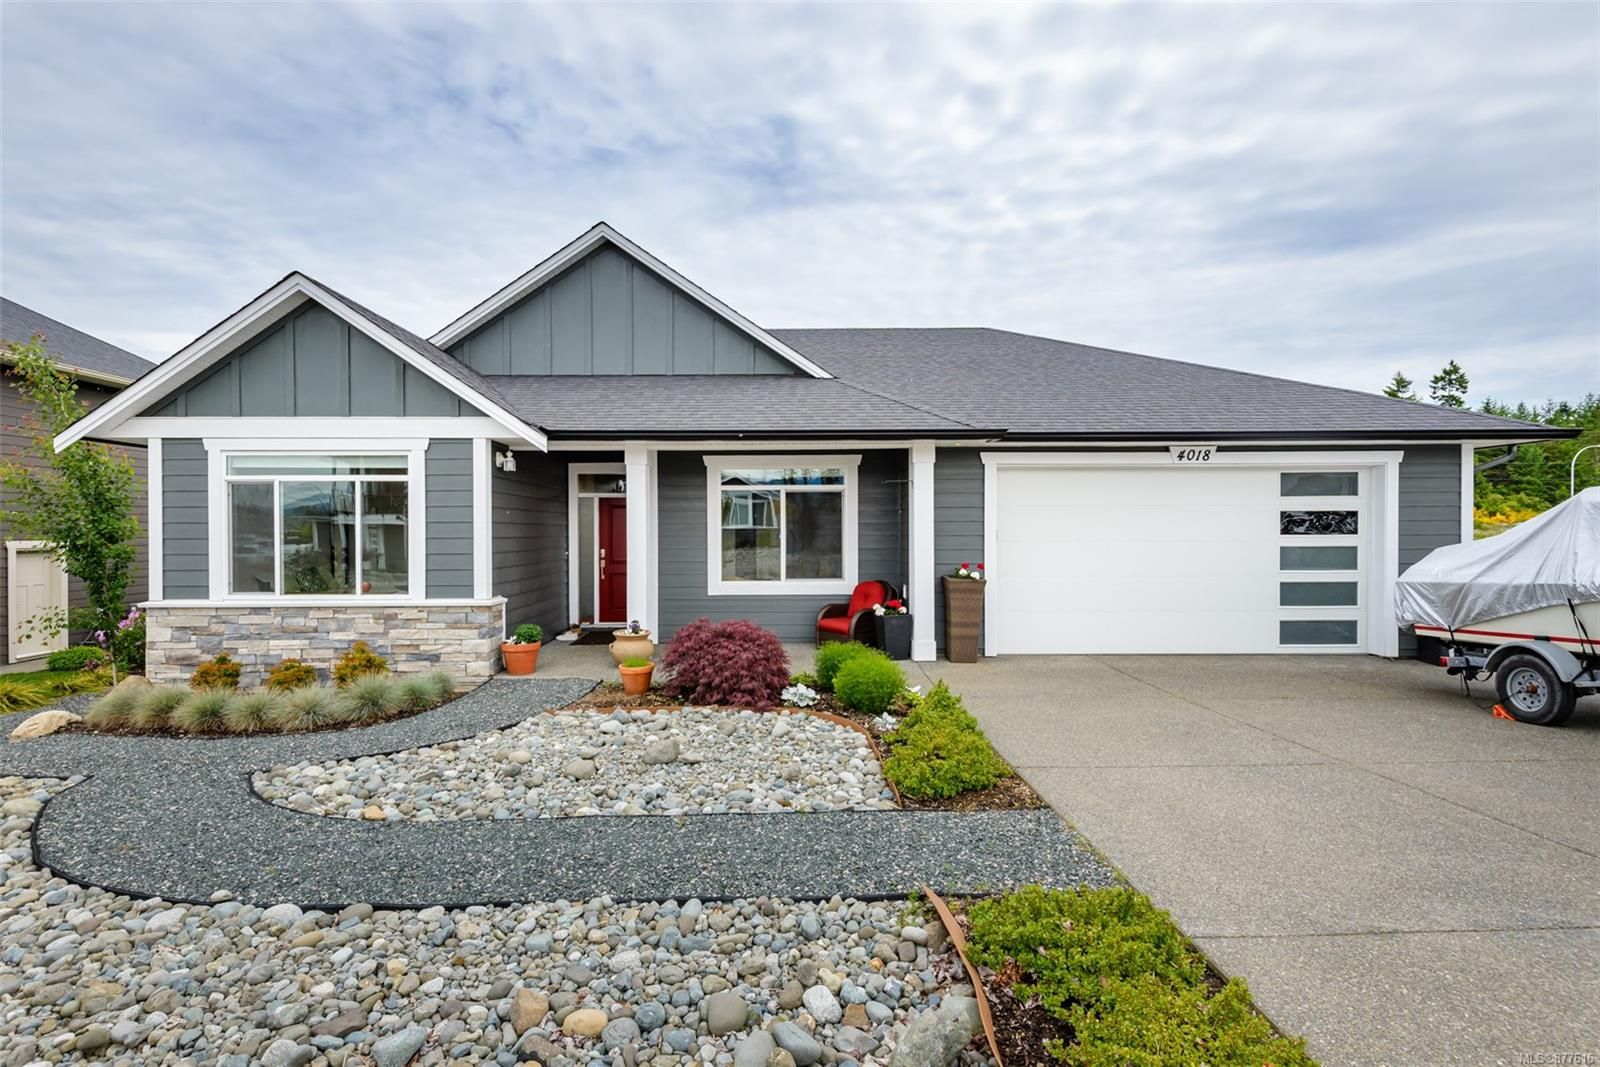 Main Photo: 4018 Southwalk Dr in : CV Courtenay City House for sale (Comox Valley)  : MLS®# 877616